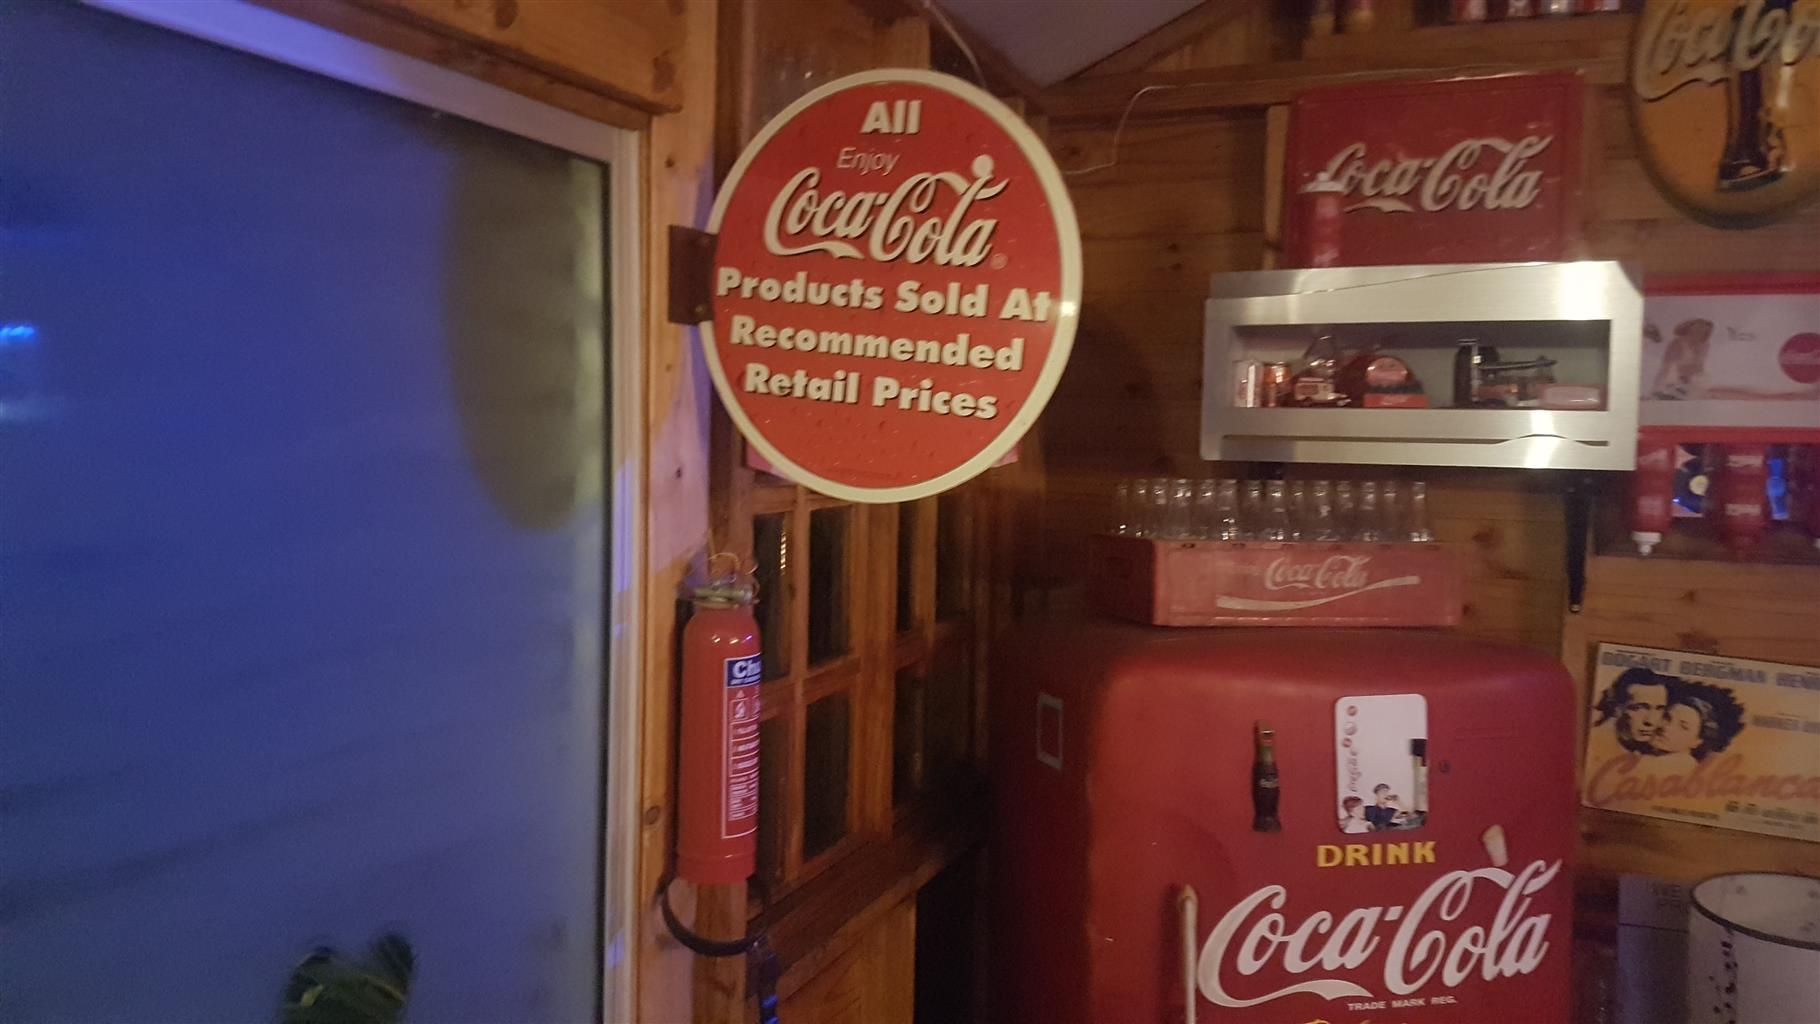 Coca cola collection